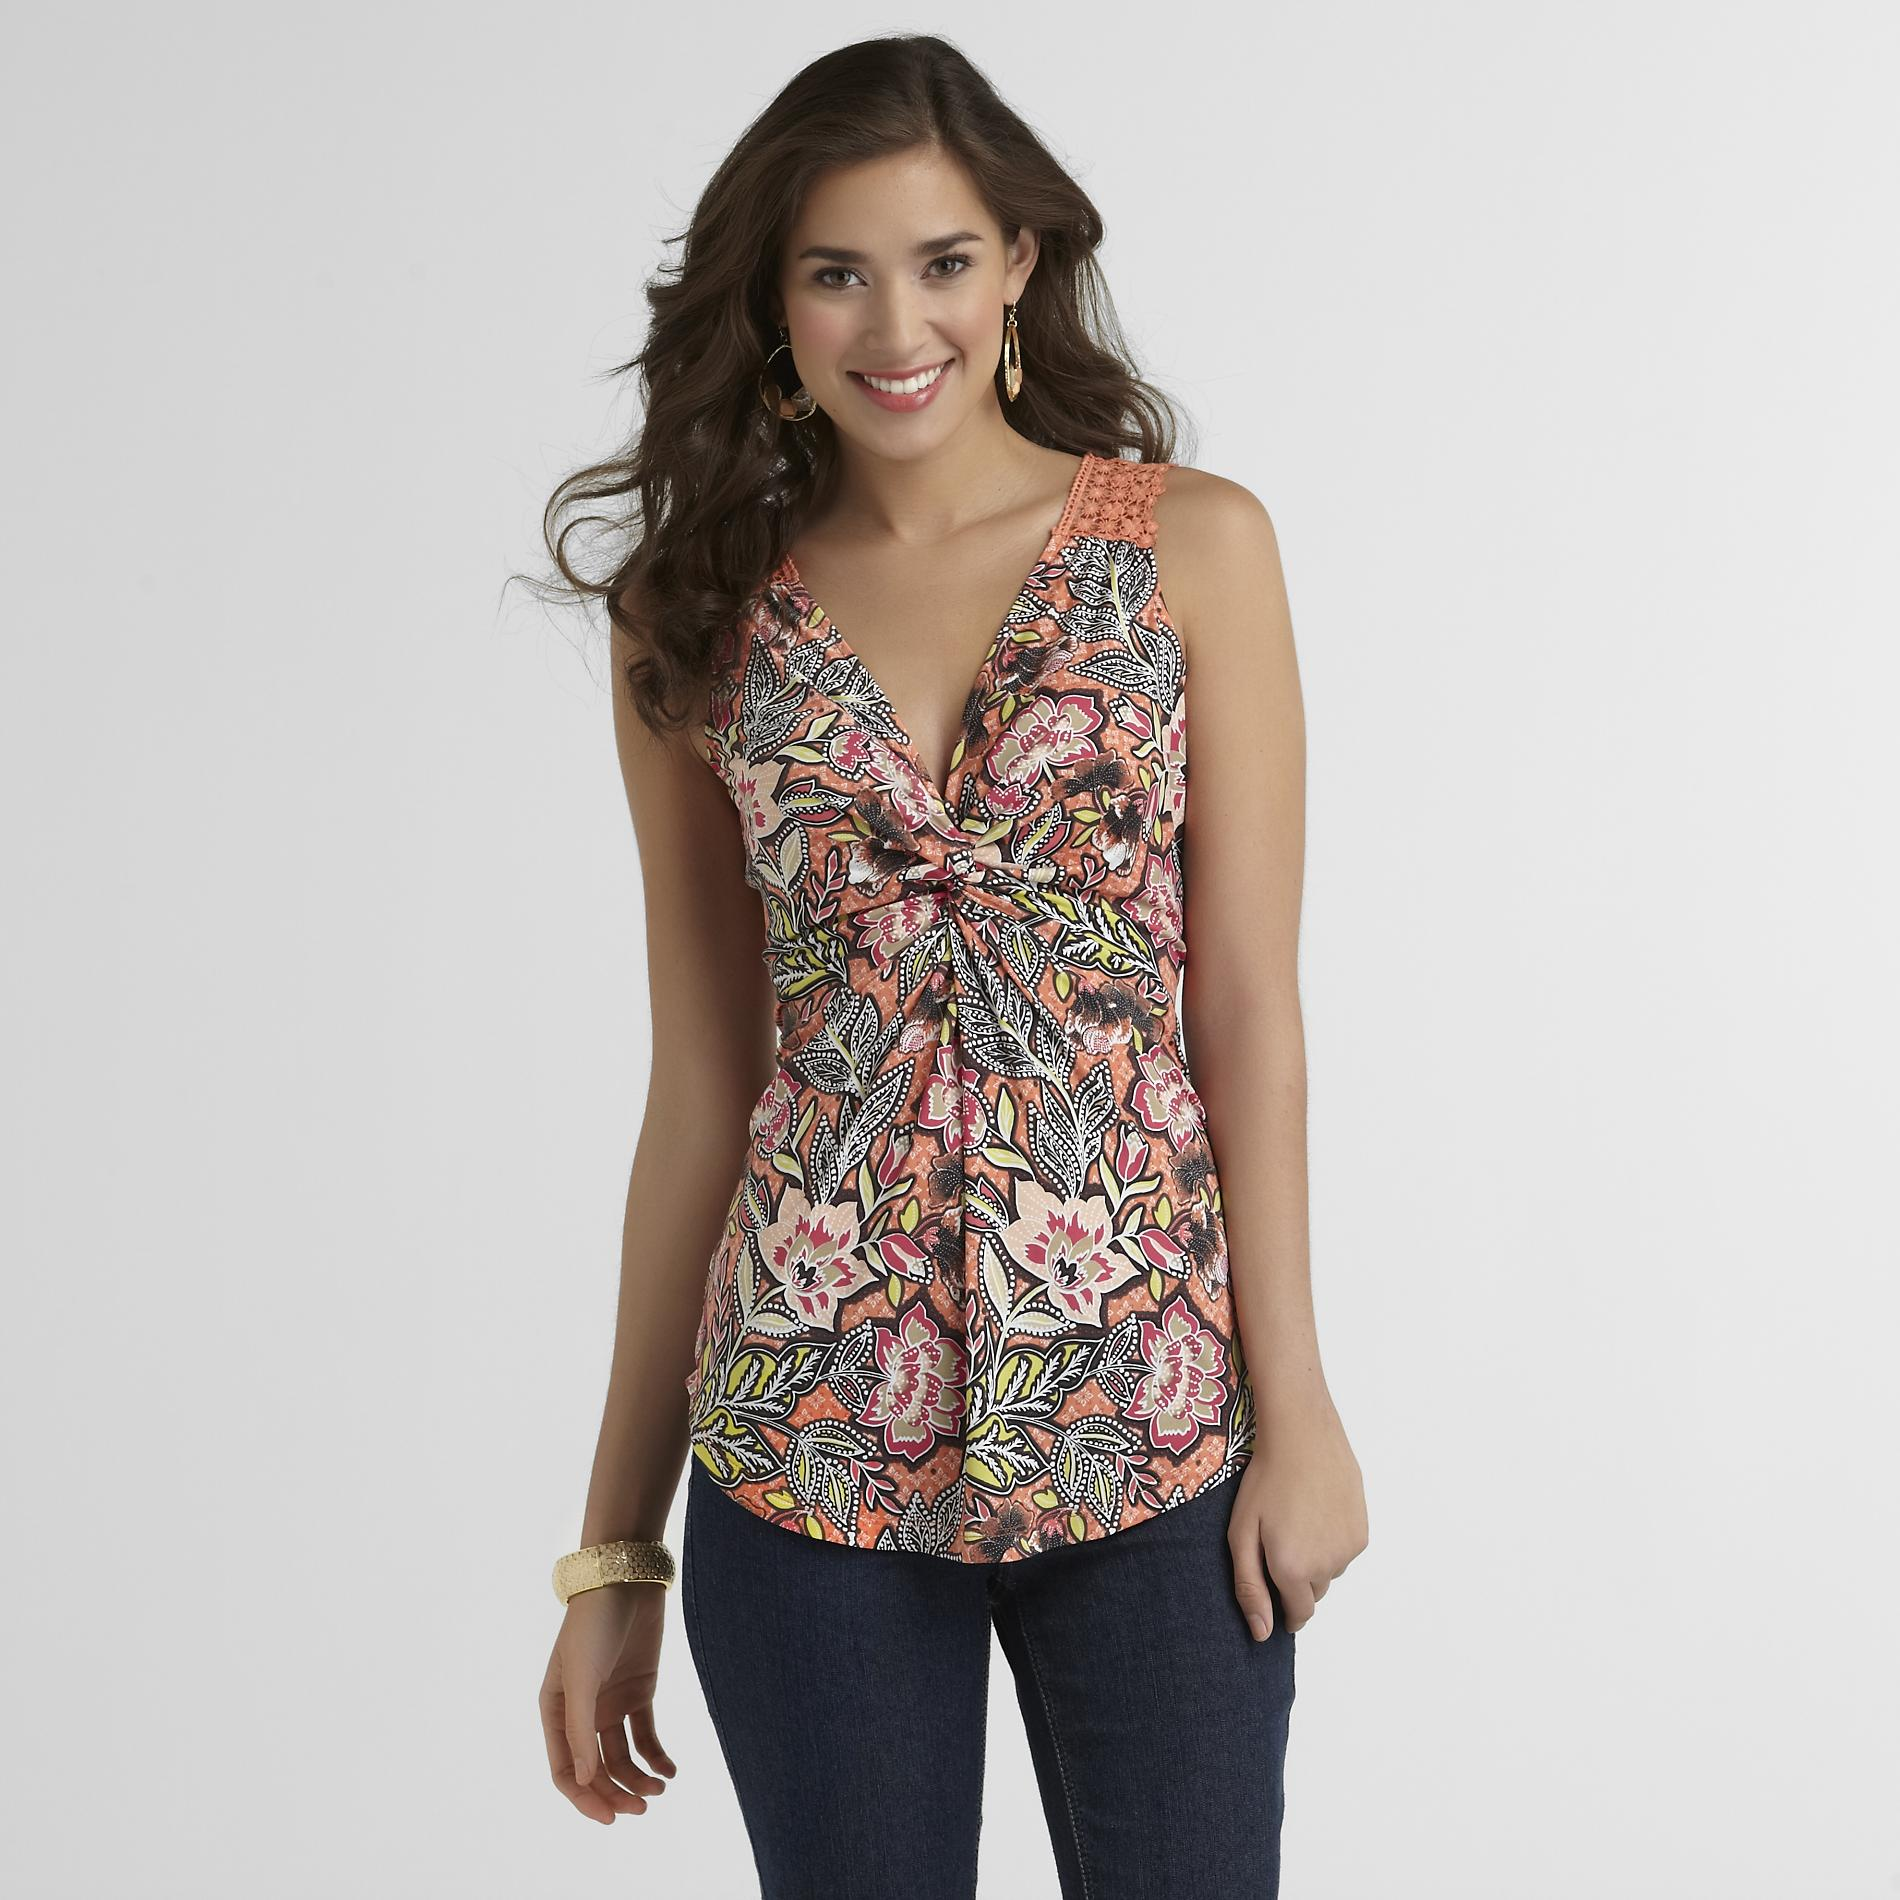 Grisbi Women's Twist-Front Top at Sears.com